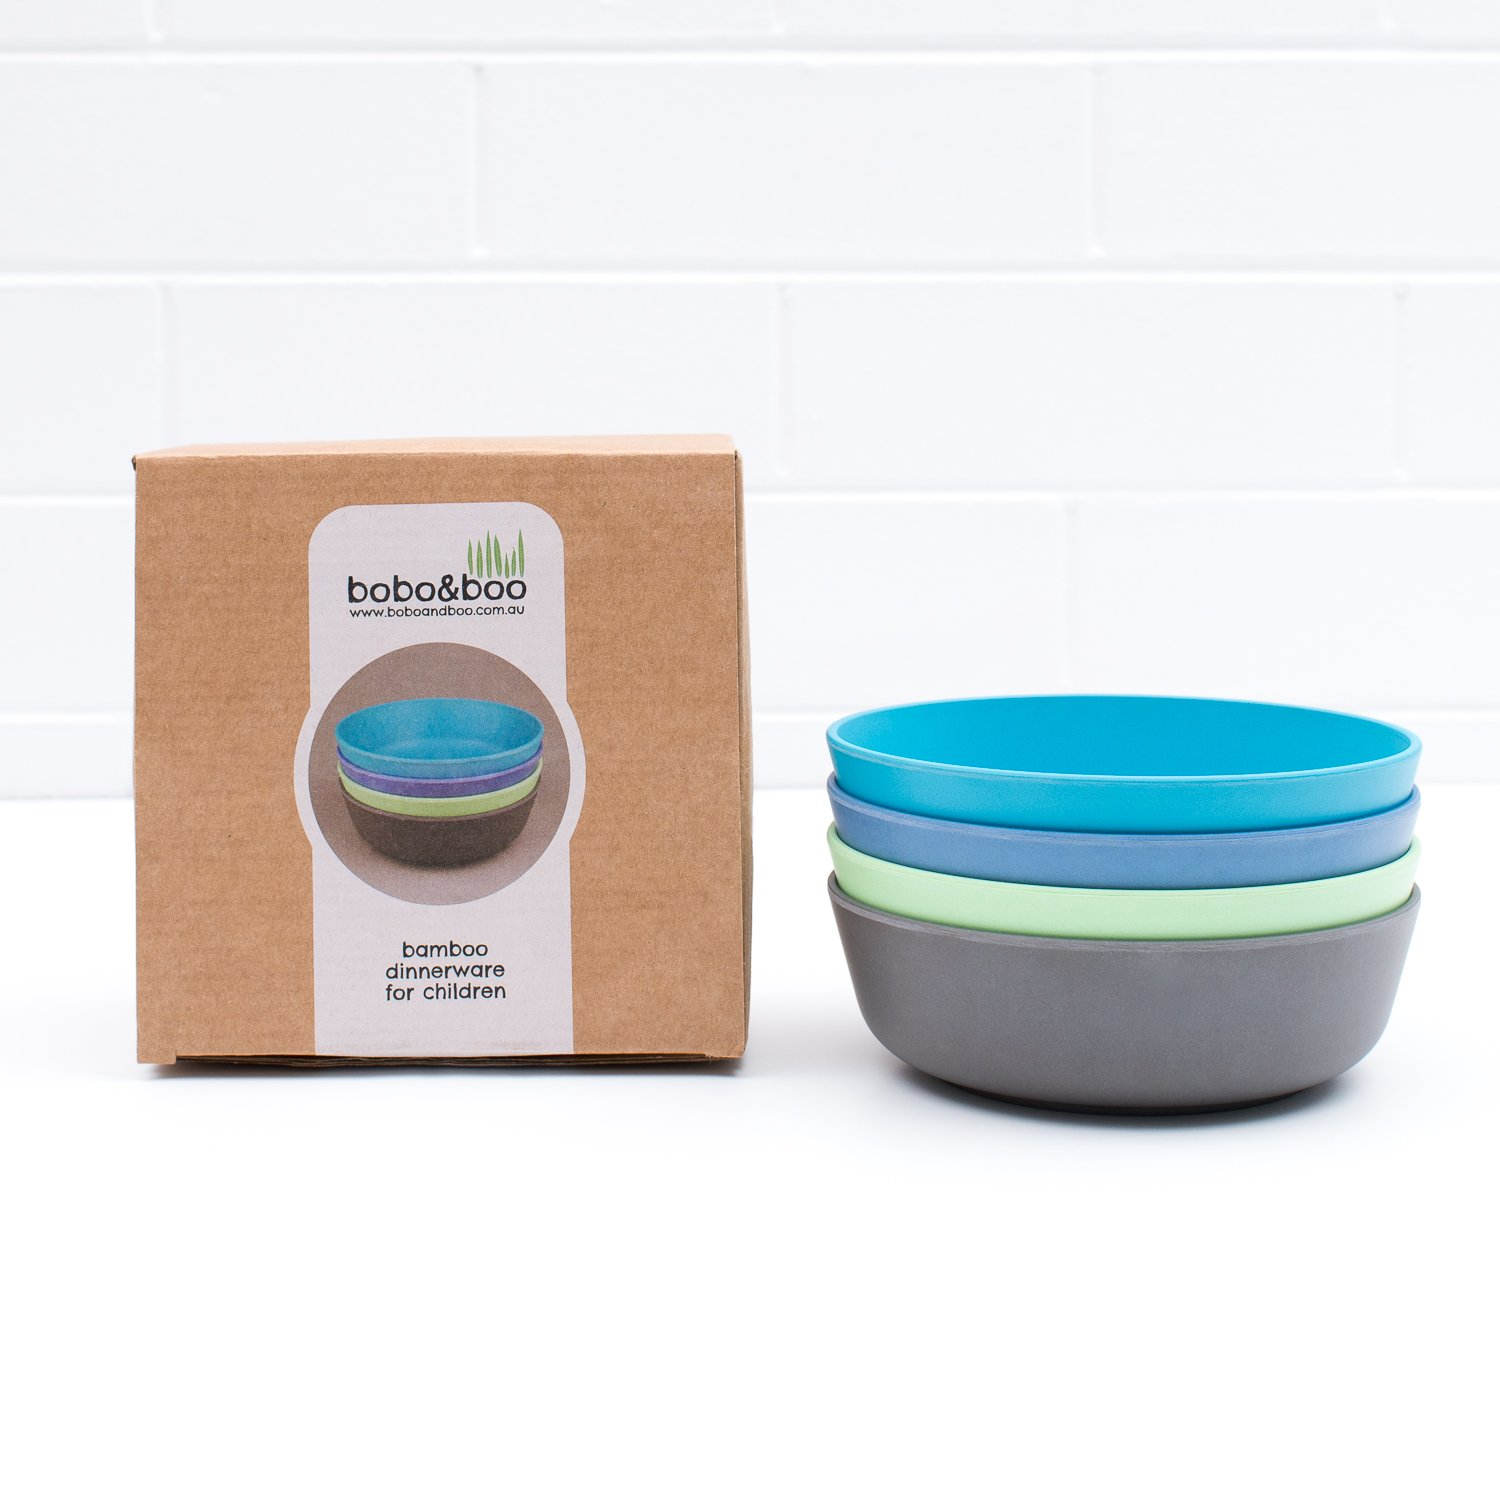 Bobo&Boo Bamboo Kids Bowls, Set of 4 Eco Friendly Toddler Bowls :: Non Toxic & Kid Safe Dishes for Cereal & Soup :: Mix and Match :: Great Gift for Baby Showers & Birthdays, Coastal